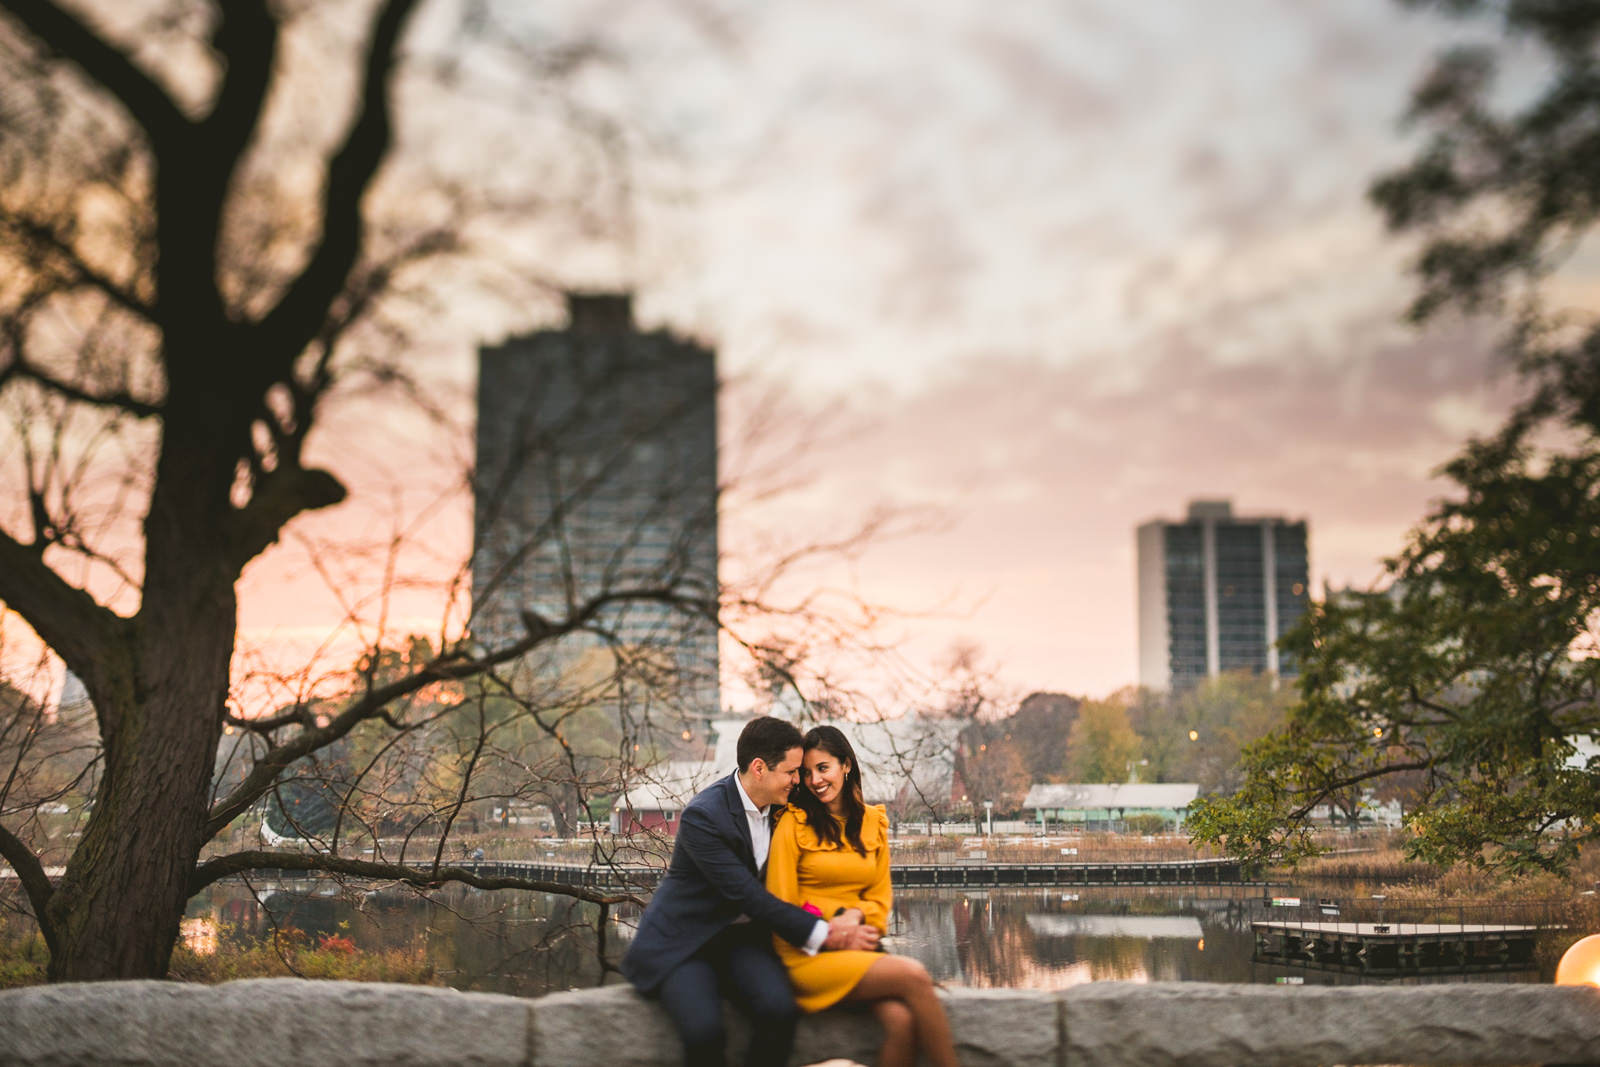 13 lincoln park engagement photos - Geraldine + Jose // Proposing in Chicago